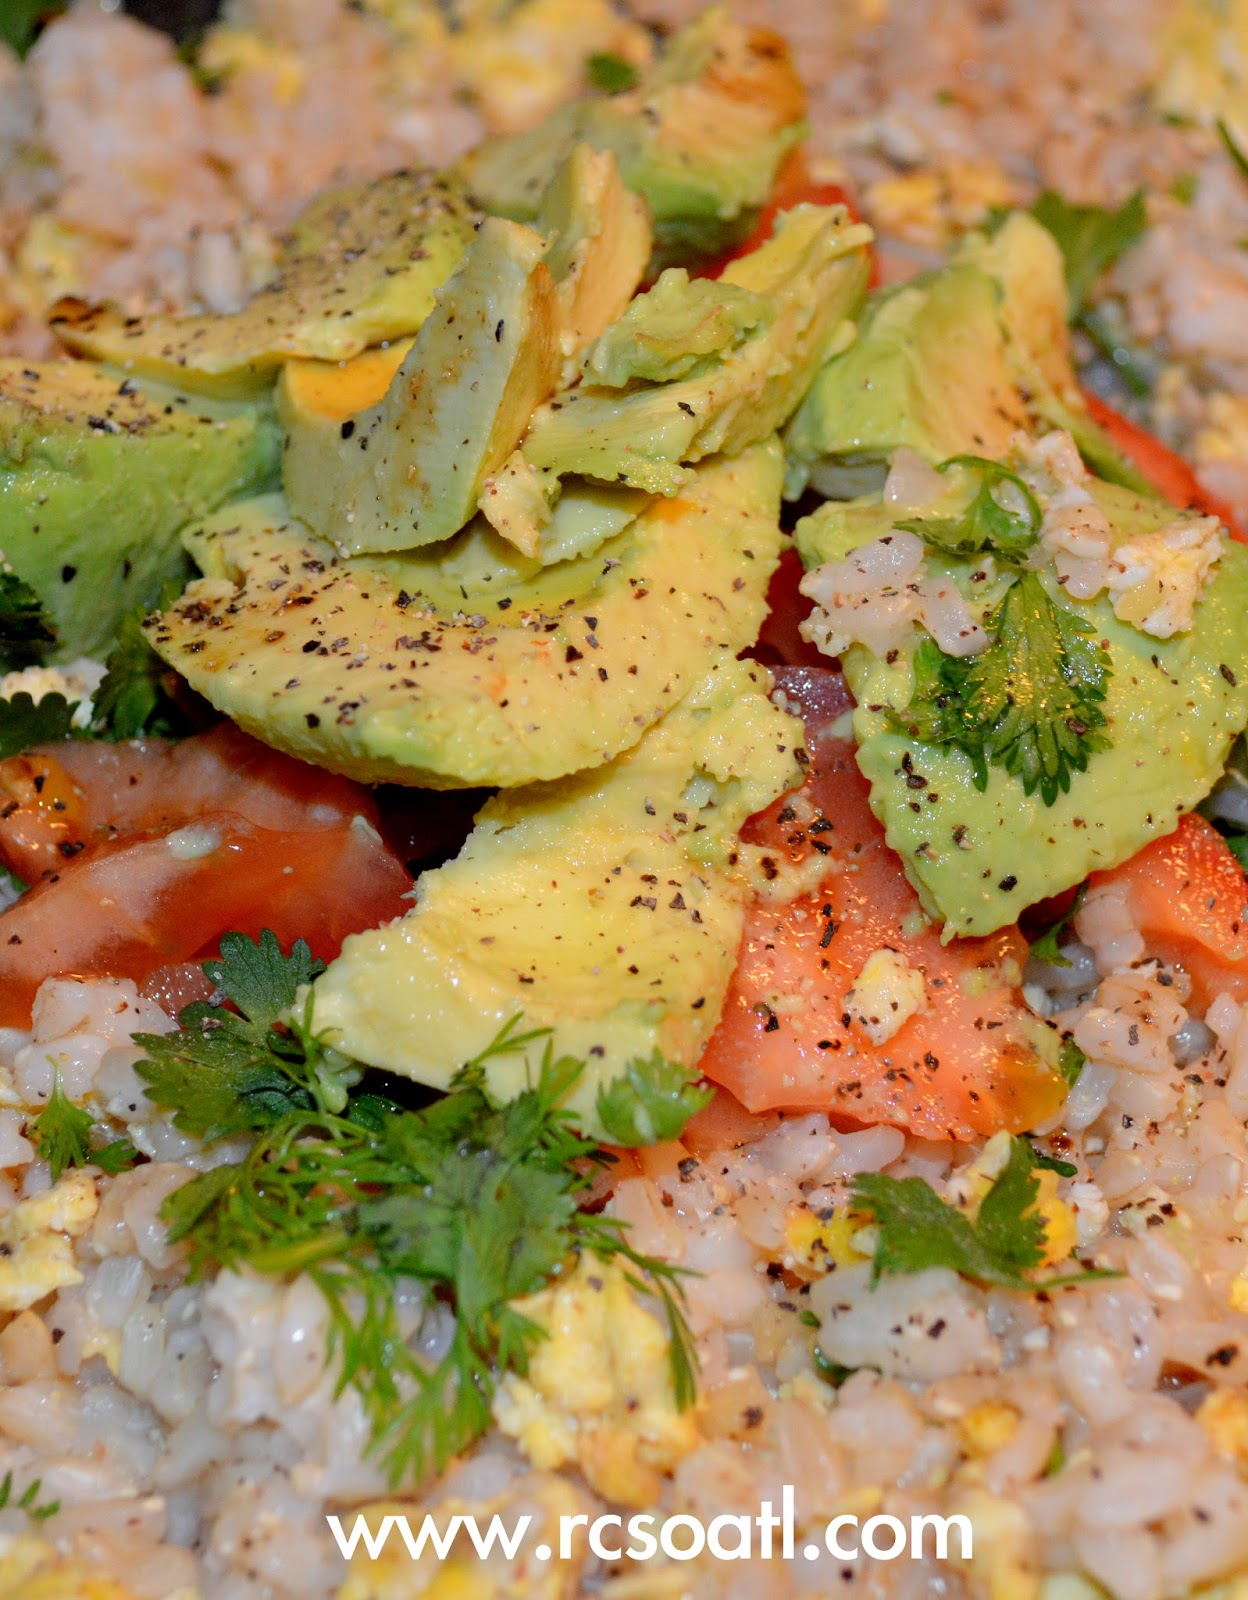 ... College Student of Atlanta: Fried brown rice with avocado and tomato